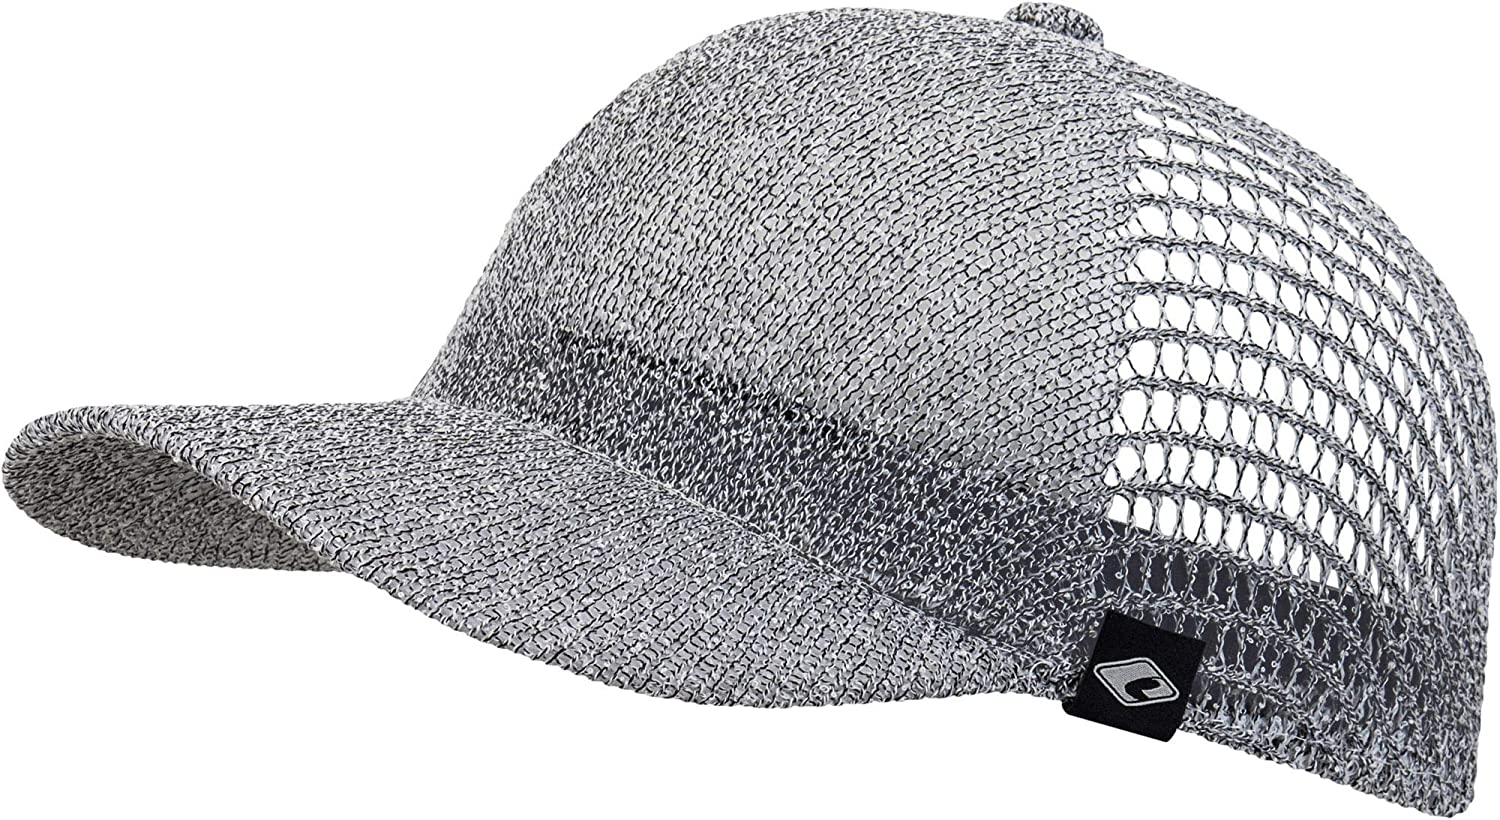 Gorra de Beisbol Odense Ultralight by Chillouts gorra de ...